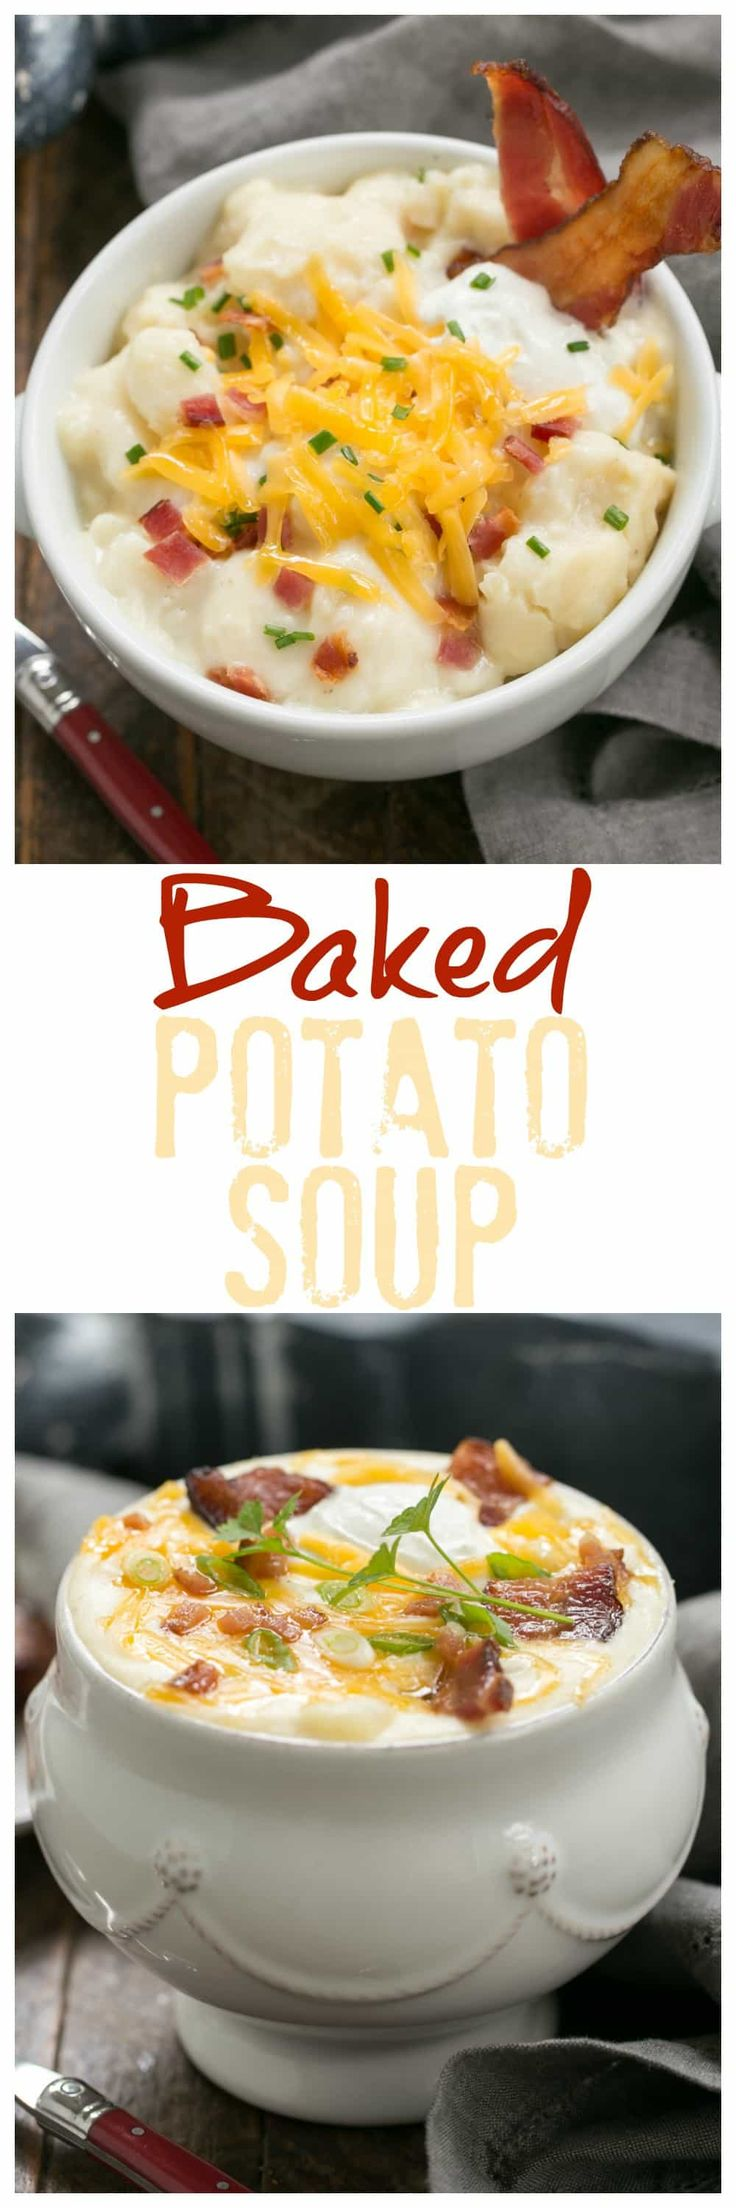 Loaded Baked Potato Soup   Creamy soup with chunks of baked potatoes and topped with cheddar, bacon, sour cream and chives! #soups #potatoes #SundaySupper